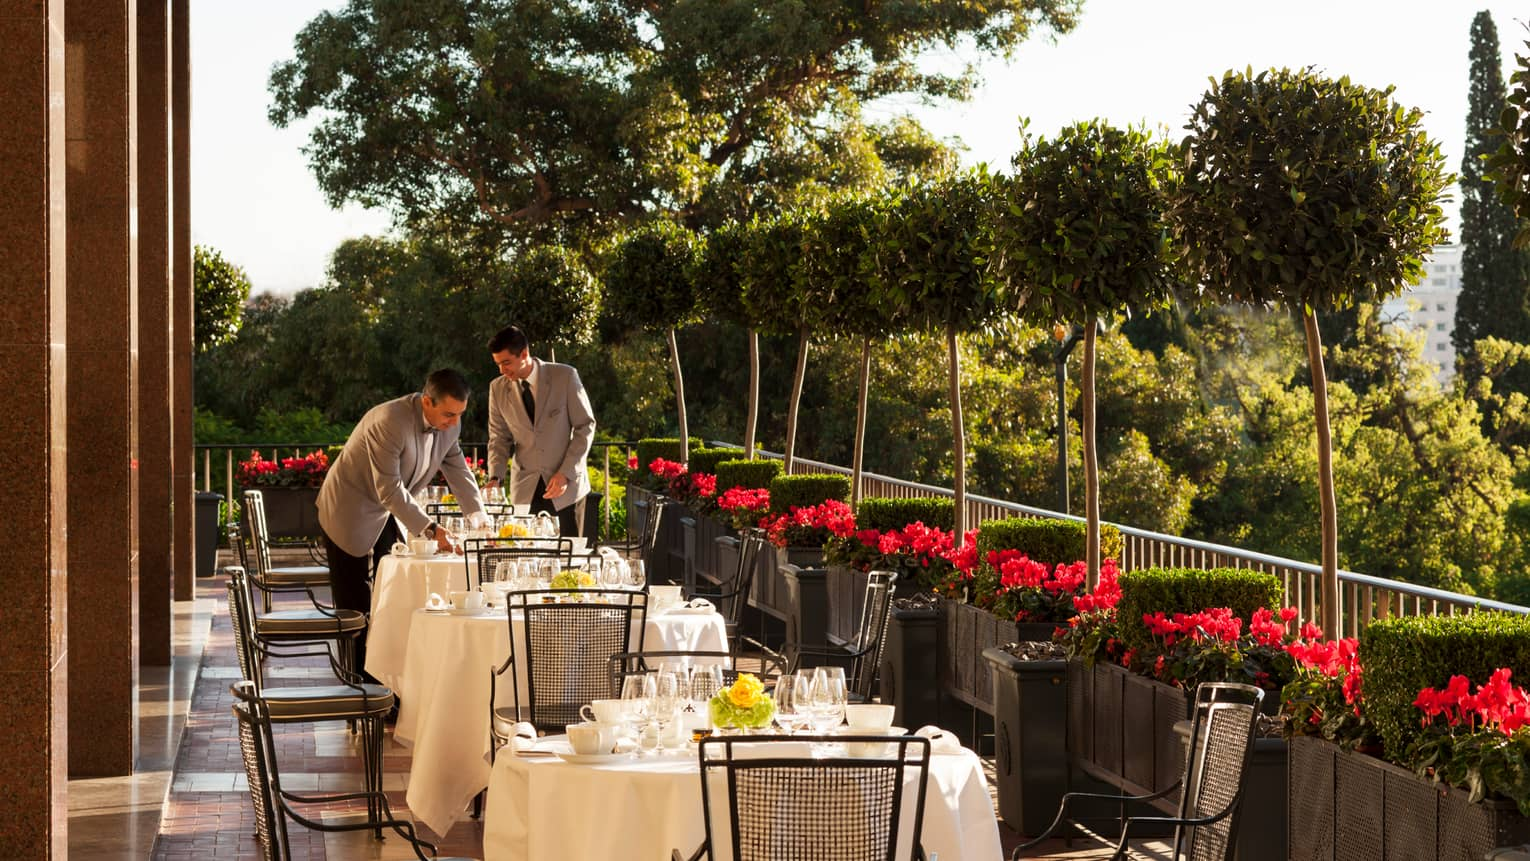 Two servers in grey jackets with black ties set outdoor dining tables with white tablecloths, dishes, red flowers along side